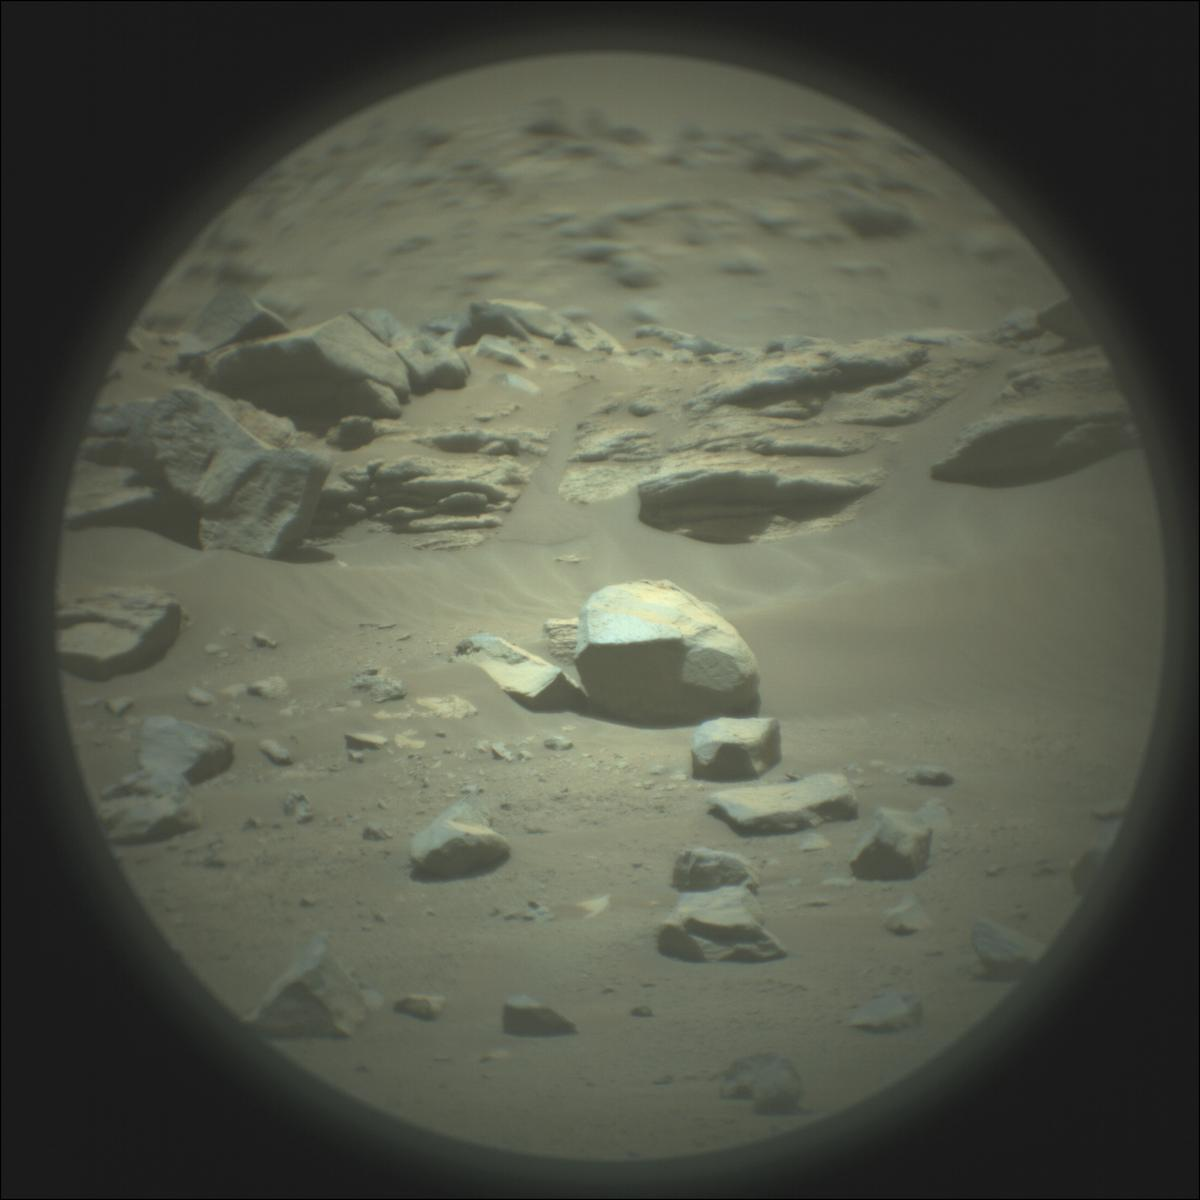 This image was taken by SUPERCAM_RMI onboard NASA's Mars rover Perseverance on Sol 146